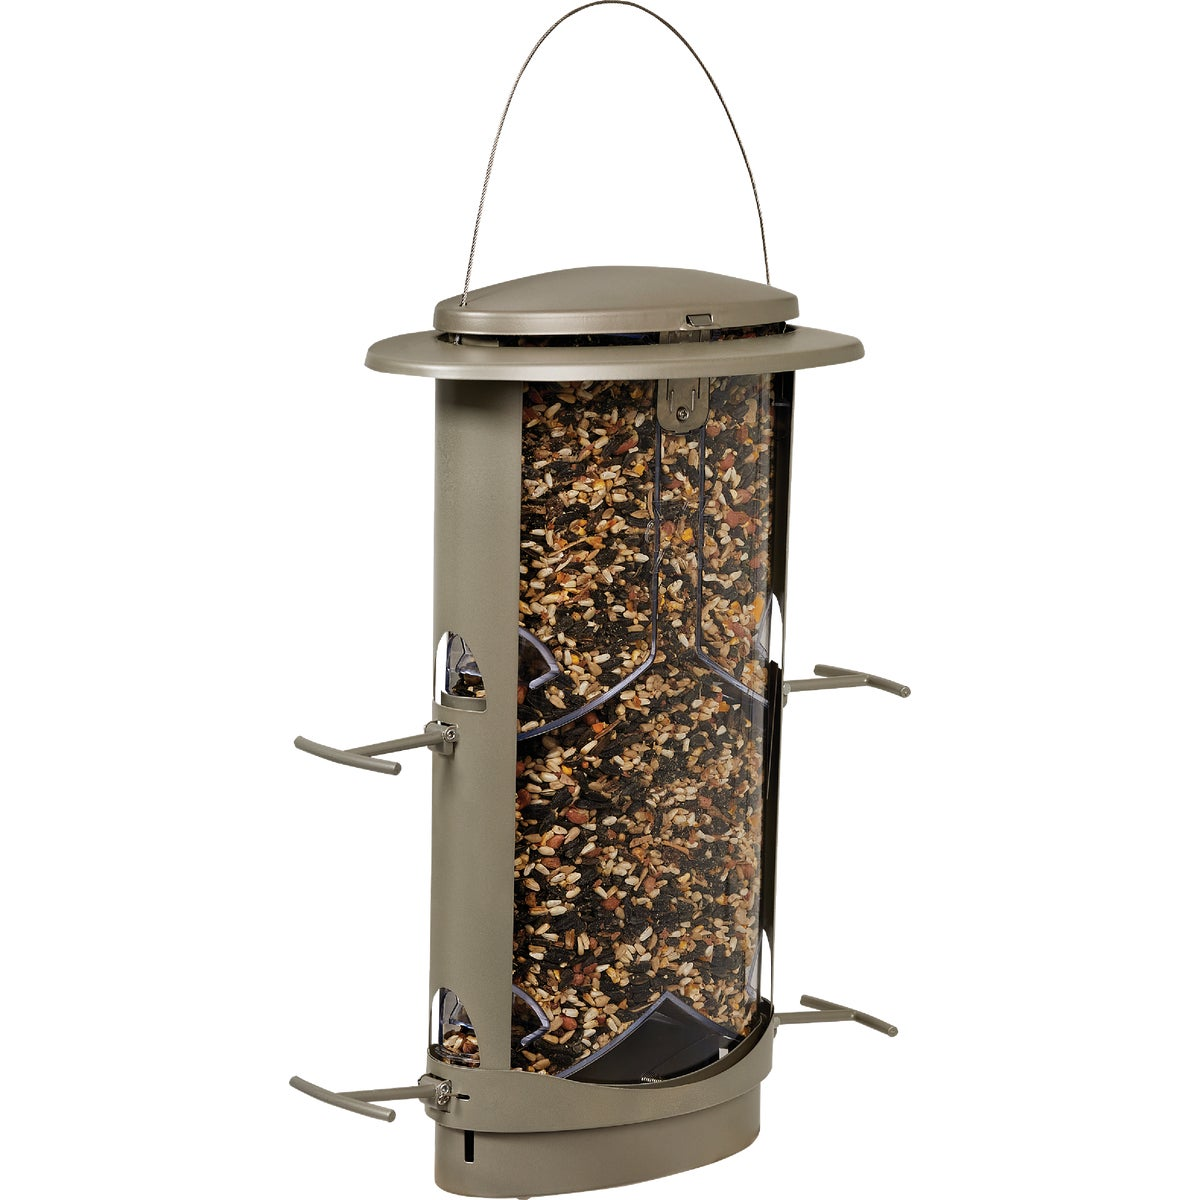 SQUIRREL X-1 BIRD FEEDER - 11 by Classic Brands